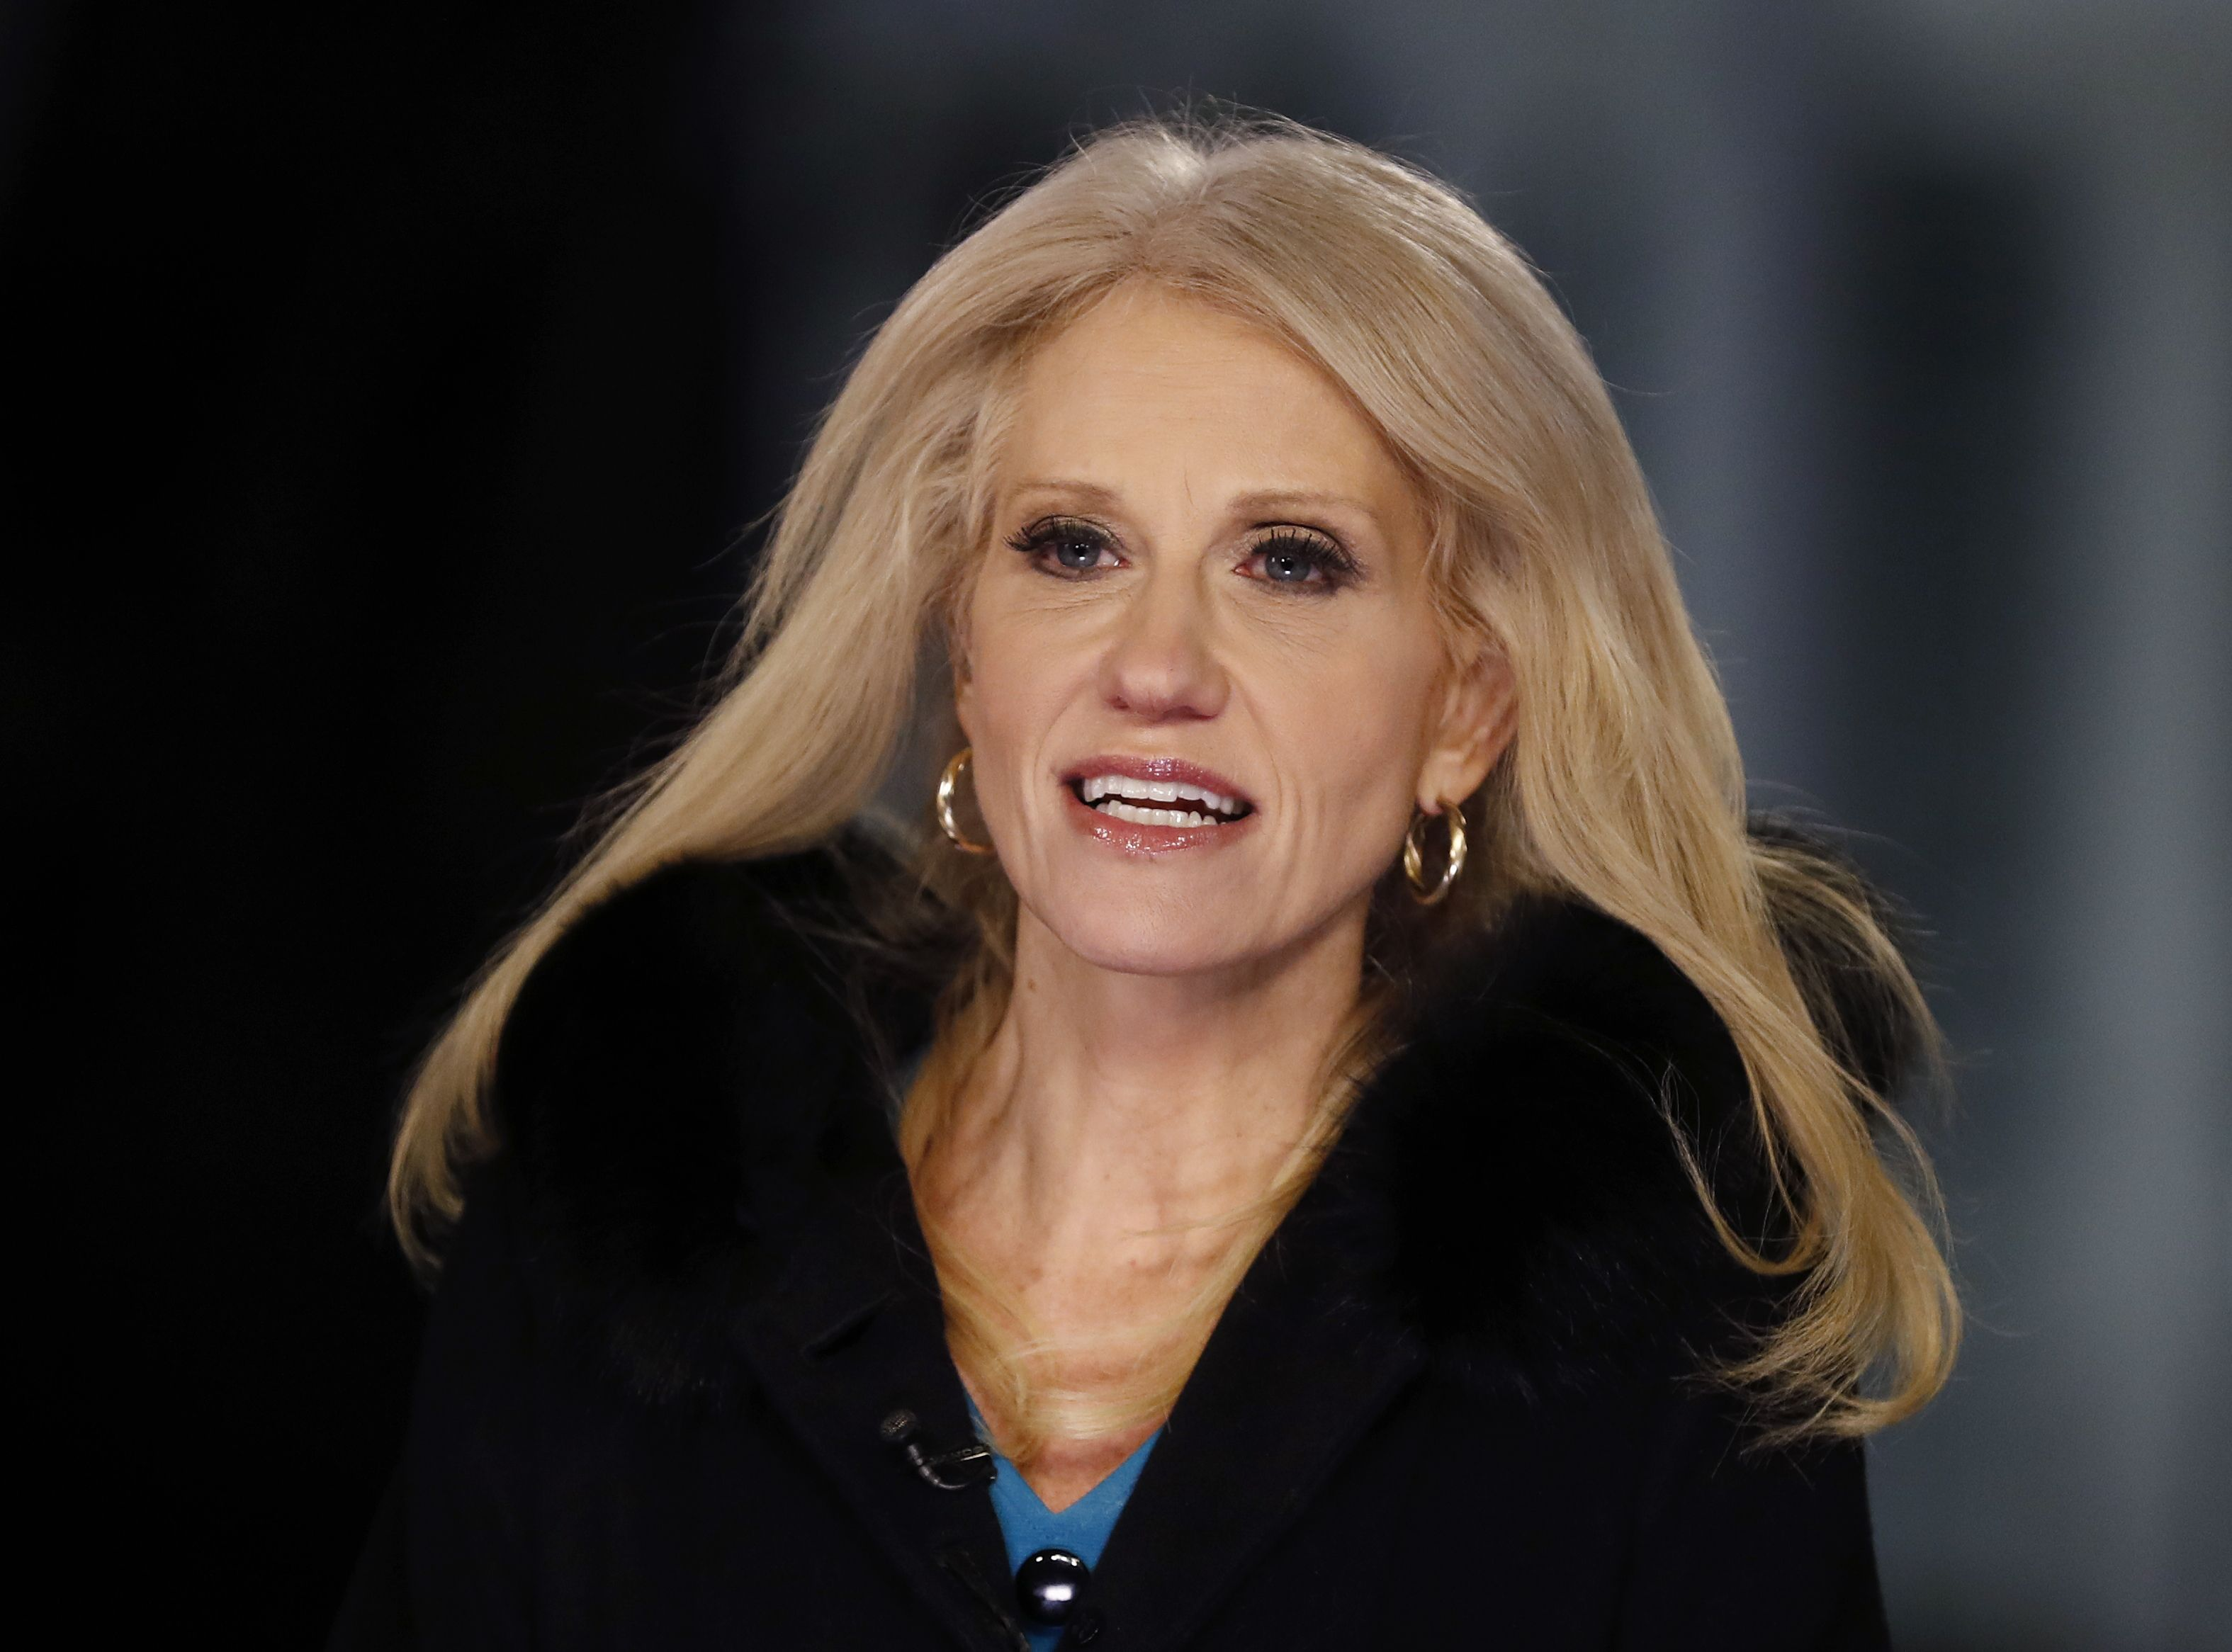 Kellyanne Conway, counselor to President Trump, who endorsed Ivanka Trump's brand is is now at the center of an ethics controversy.